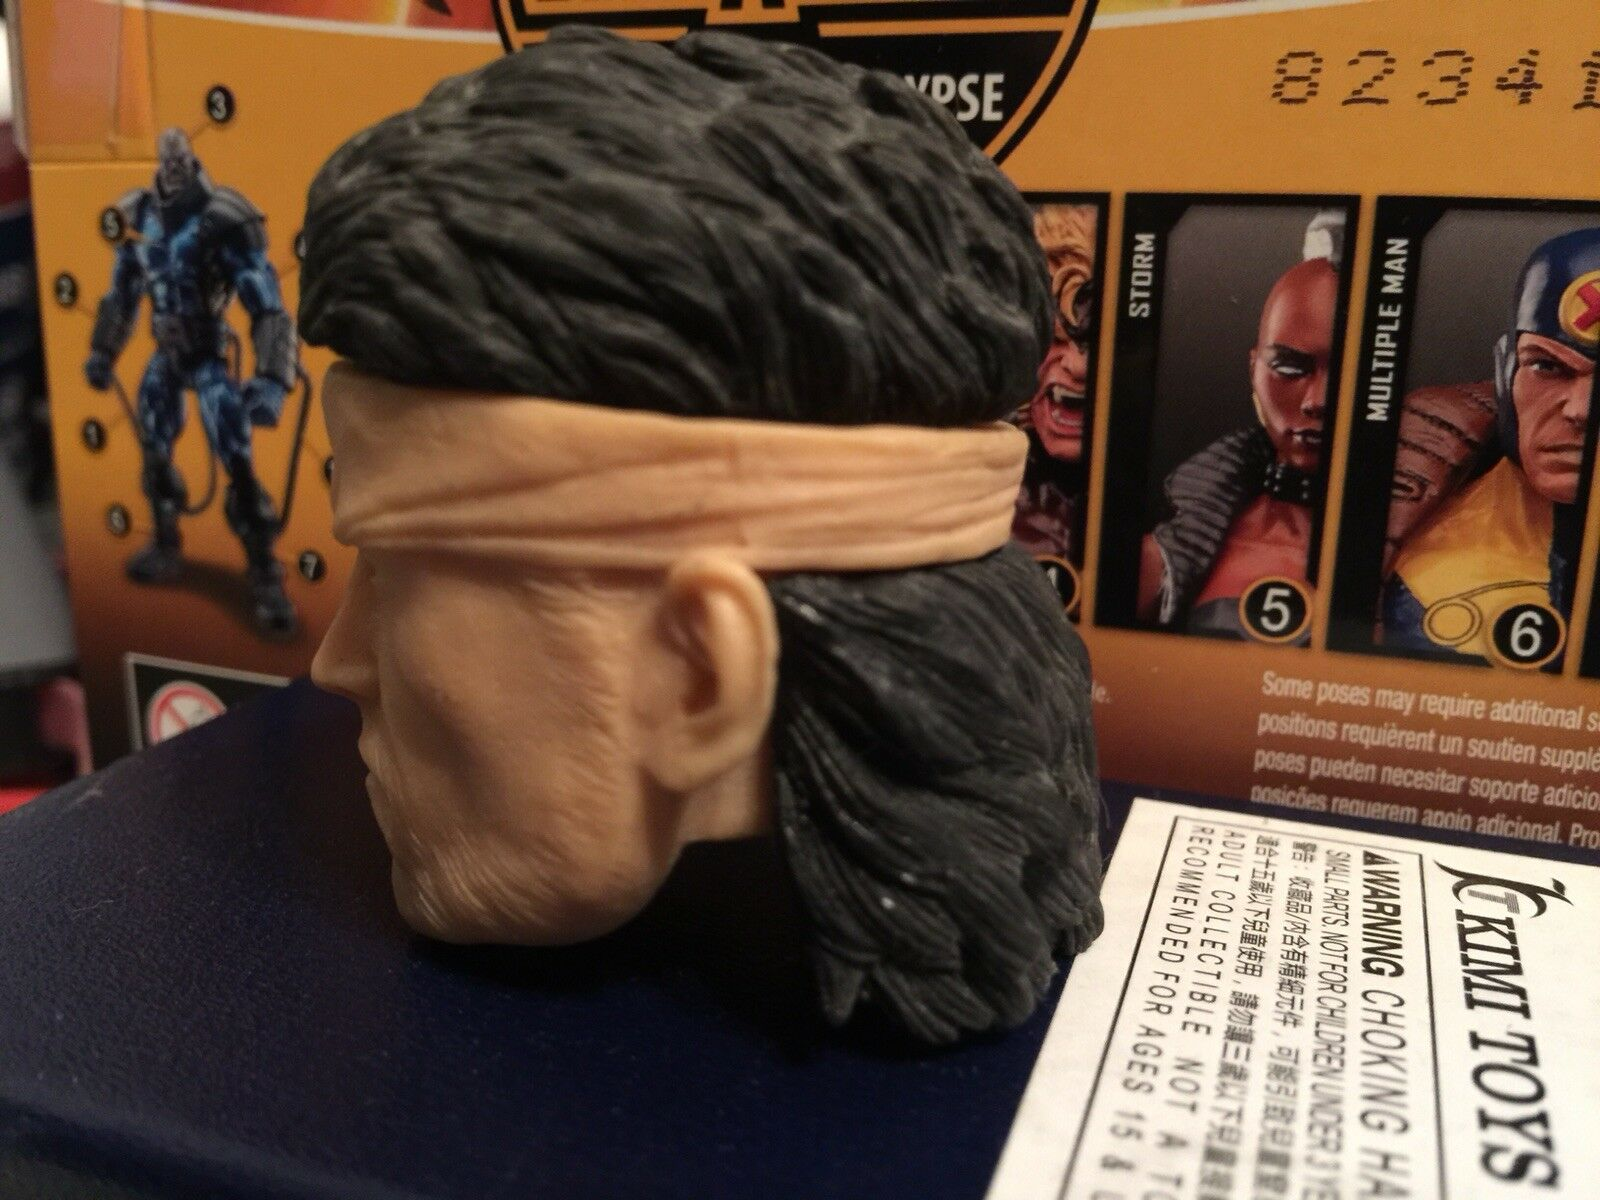 1 6 1 5 Metal Gear Solid ,Solid ,Solid ,Solid Snake Head Unpainted fa0f60